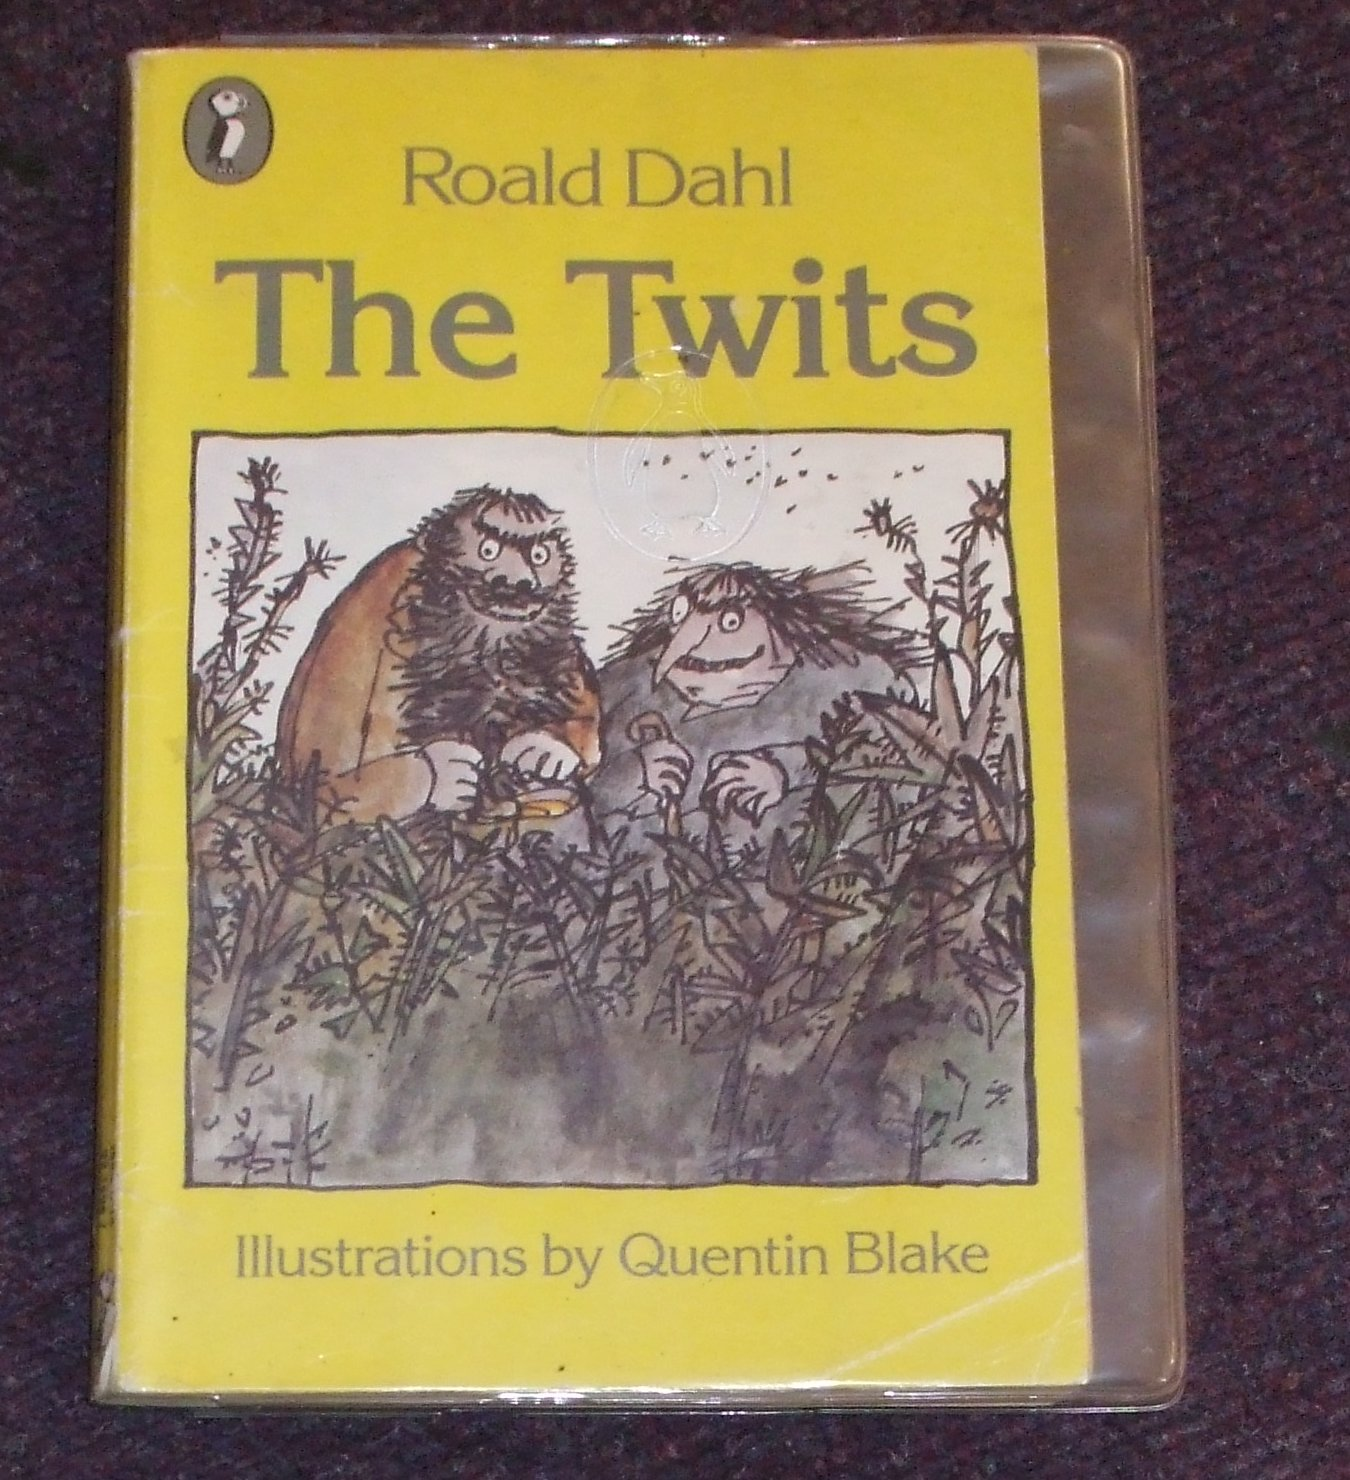 the twits by roald dahl book report Roald dahl has such an unusual first name due to fact that his parents spelt his name wrong on the register of births from this non-literary background came one of the masters of children's literature the twits is one of his many successful and highly entertaining books the twits are a couple.